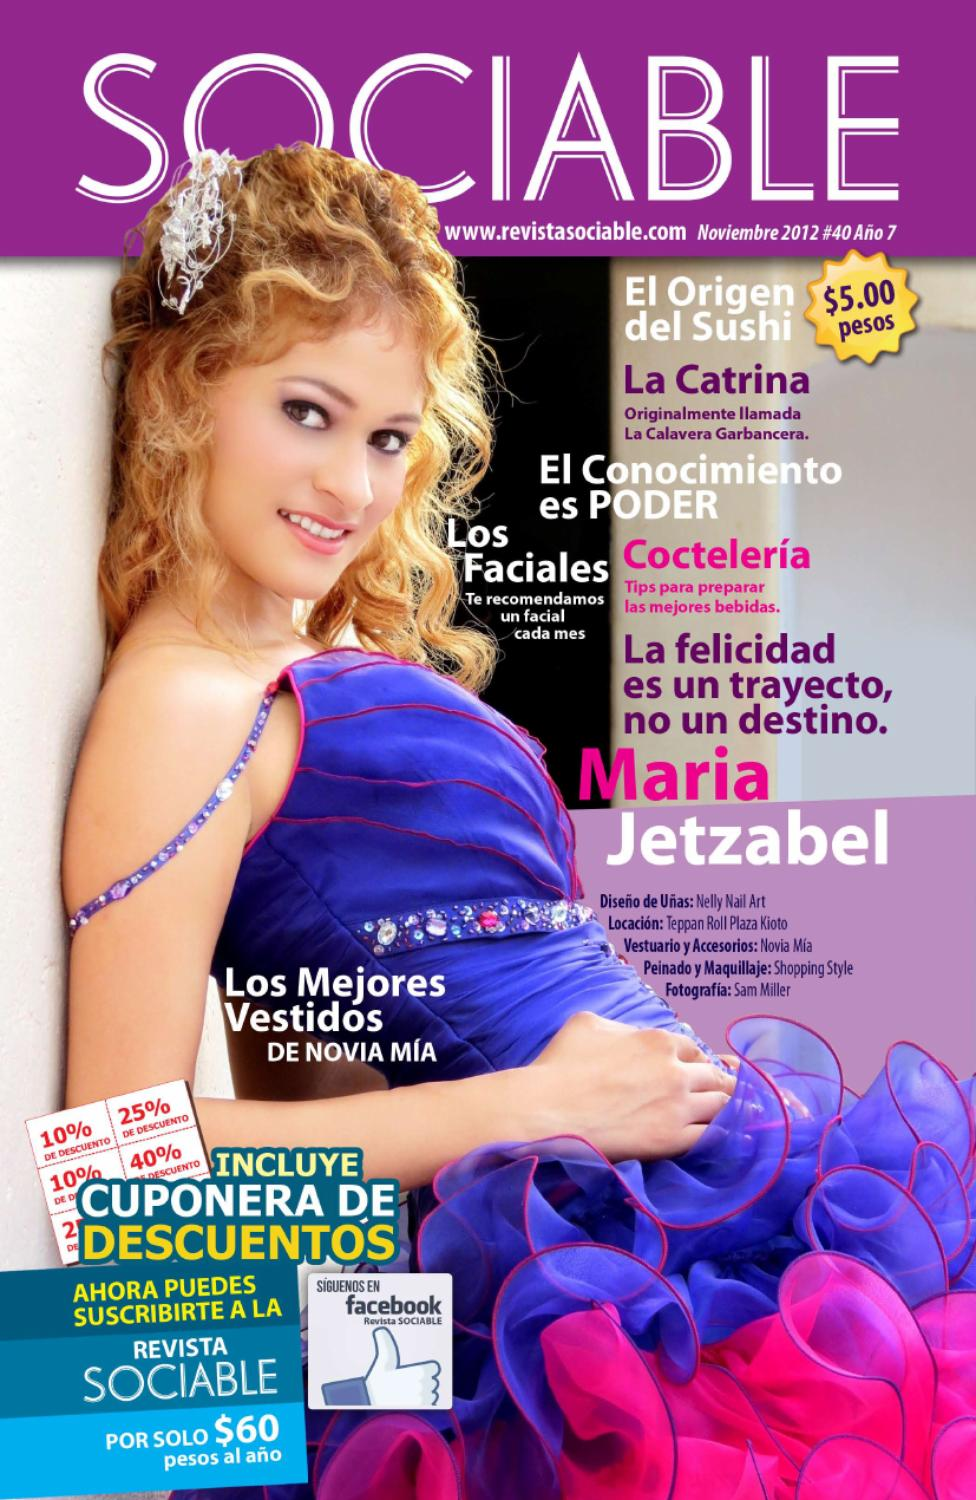 SOCIABLE Noviembre 2012 by Revista SOCIABLE - issuu